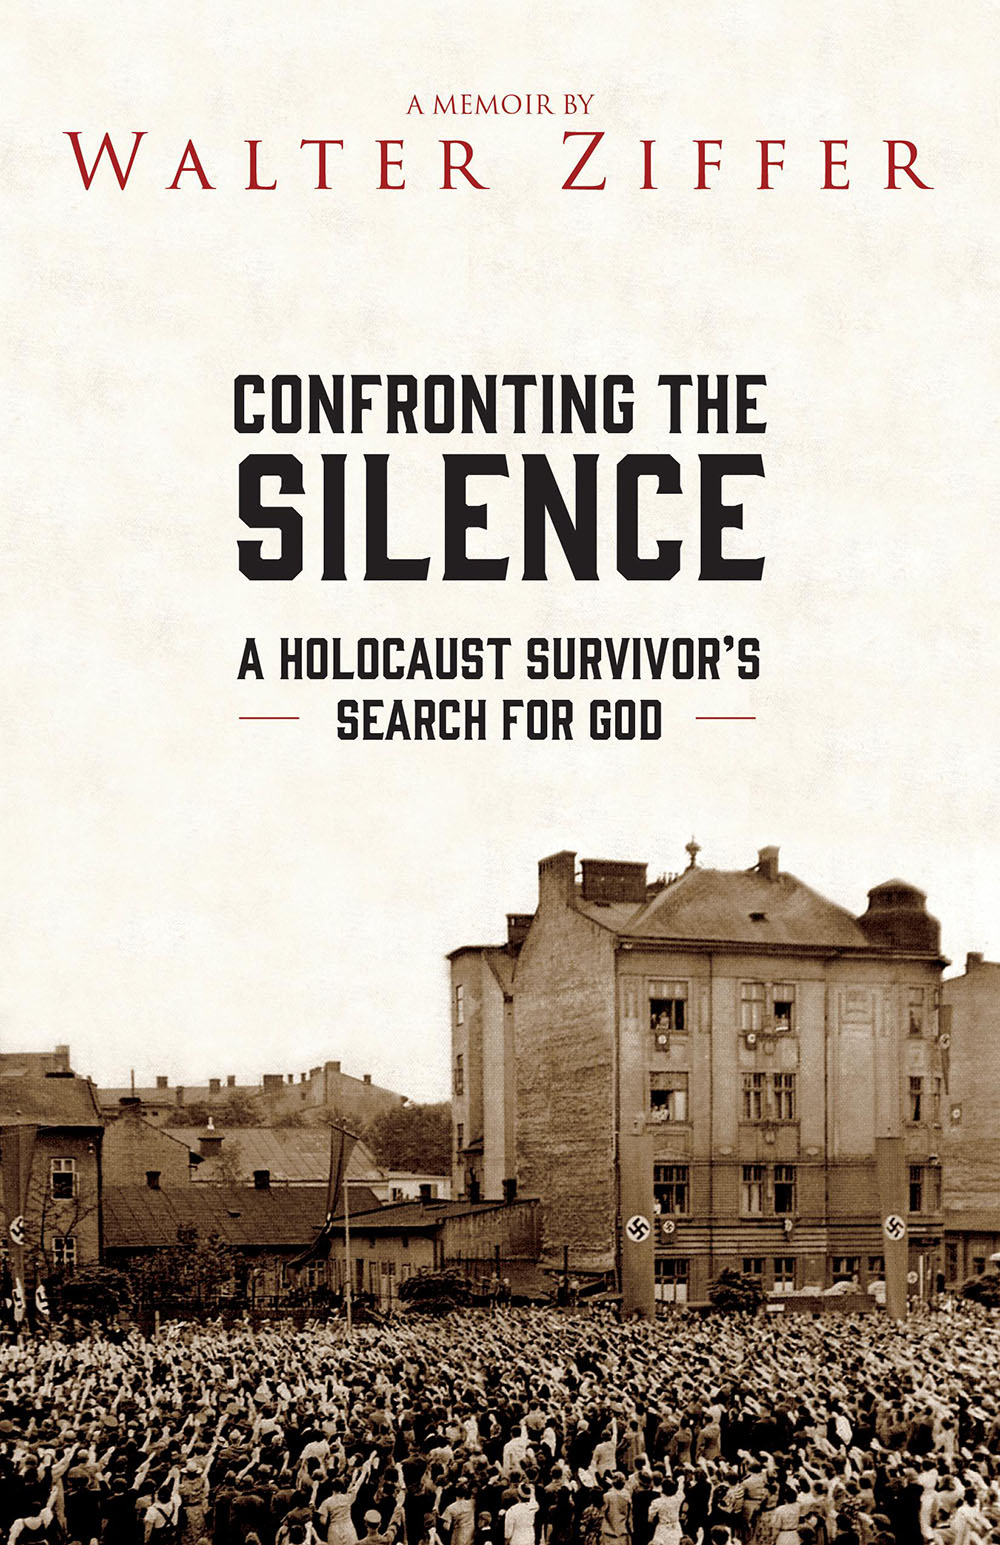 Confronting the Silence by Walter Ziffer